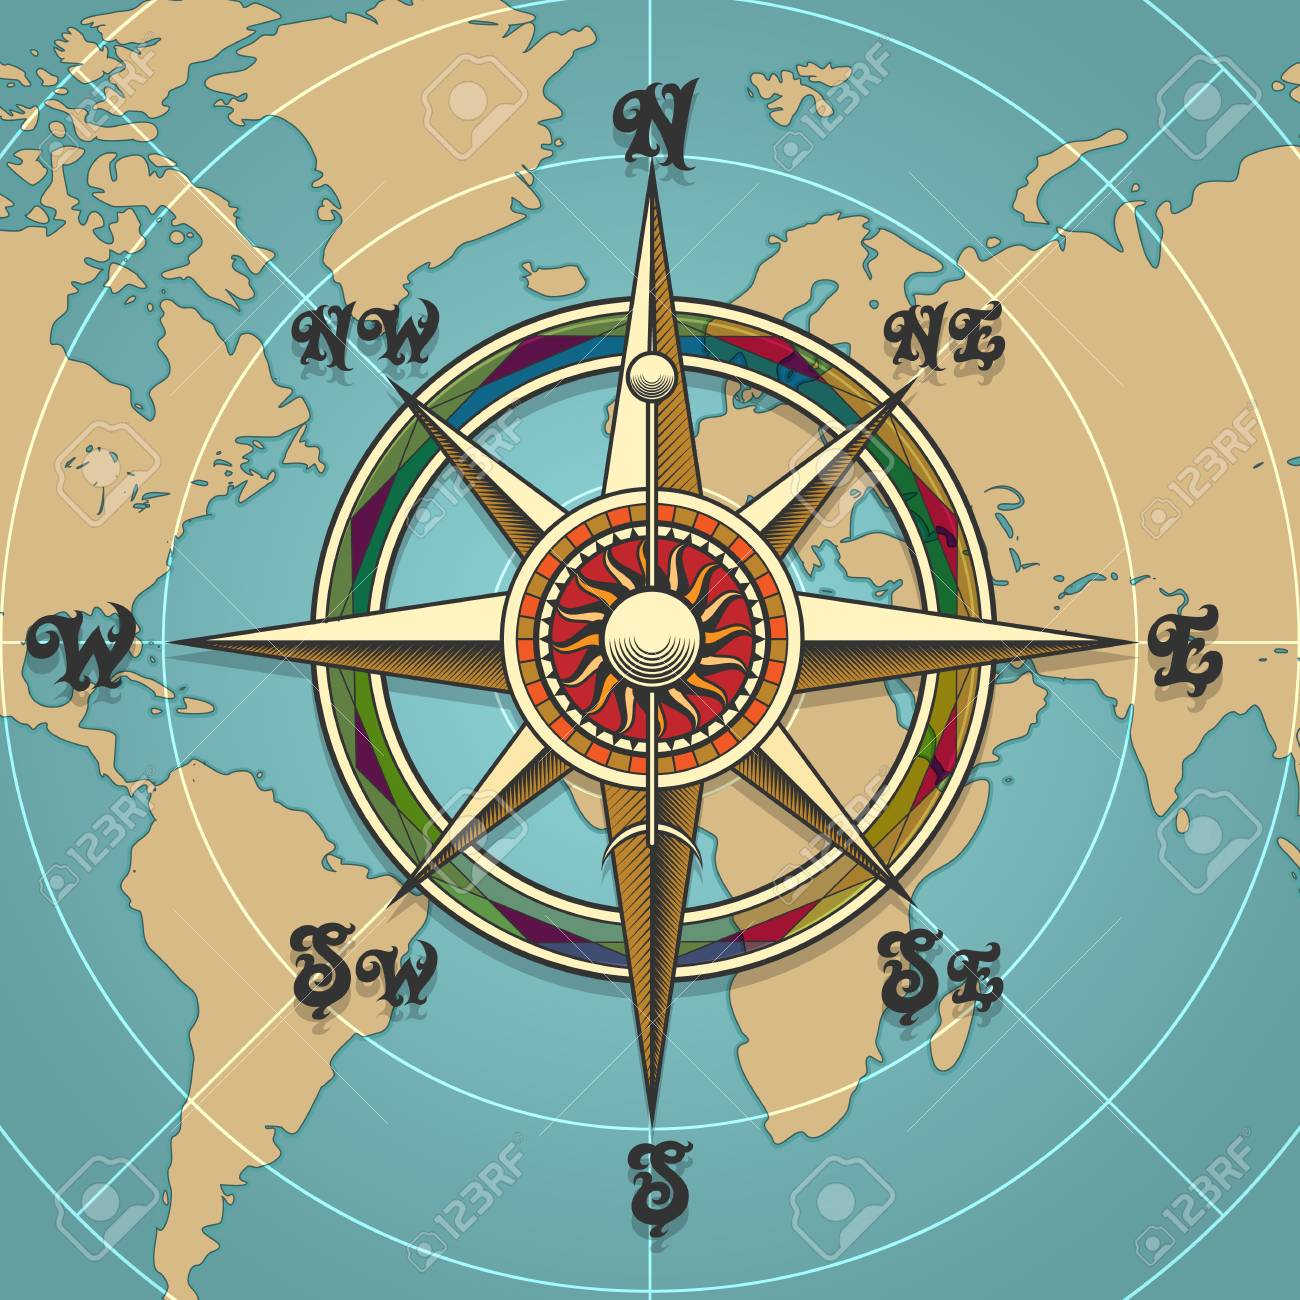 Classic vintage wind compass rose on map background drawn in retro style. Vector illustration. - 92100334